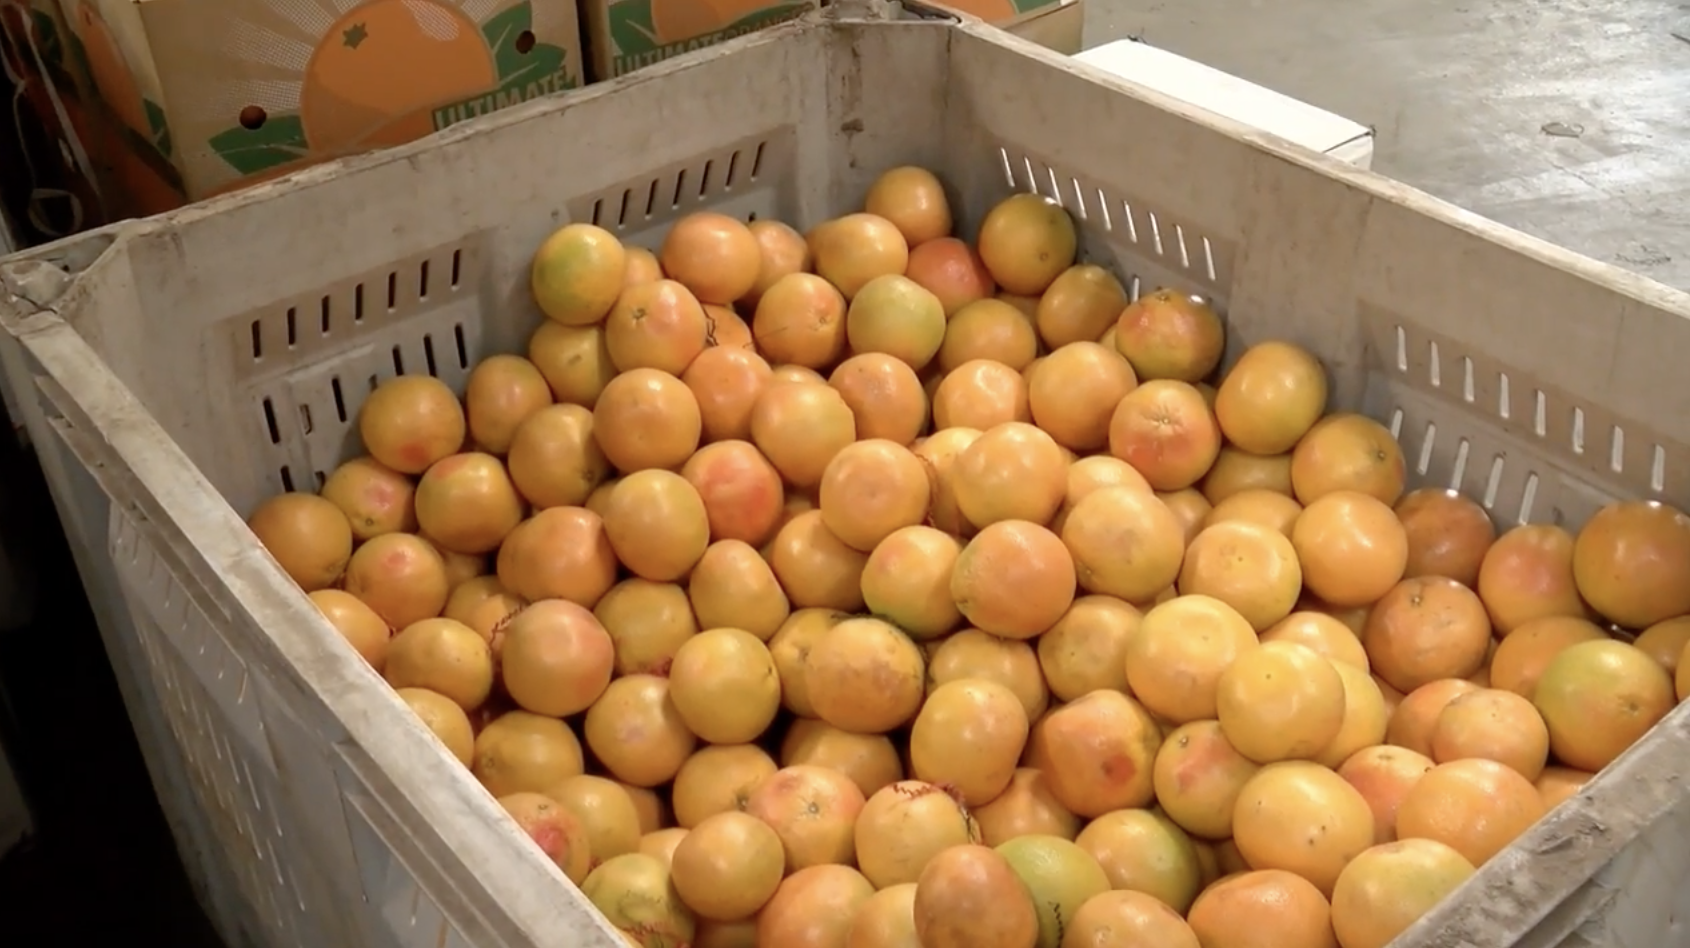 A Harlingen company will ship more than 600,000 boxes of Rio Grande Valley fruit and nuts during December.